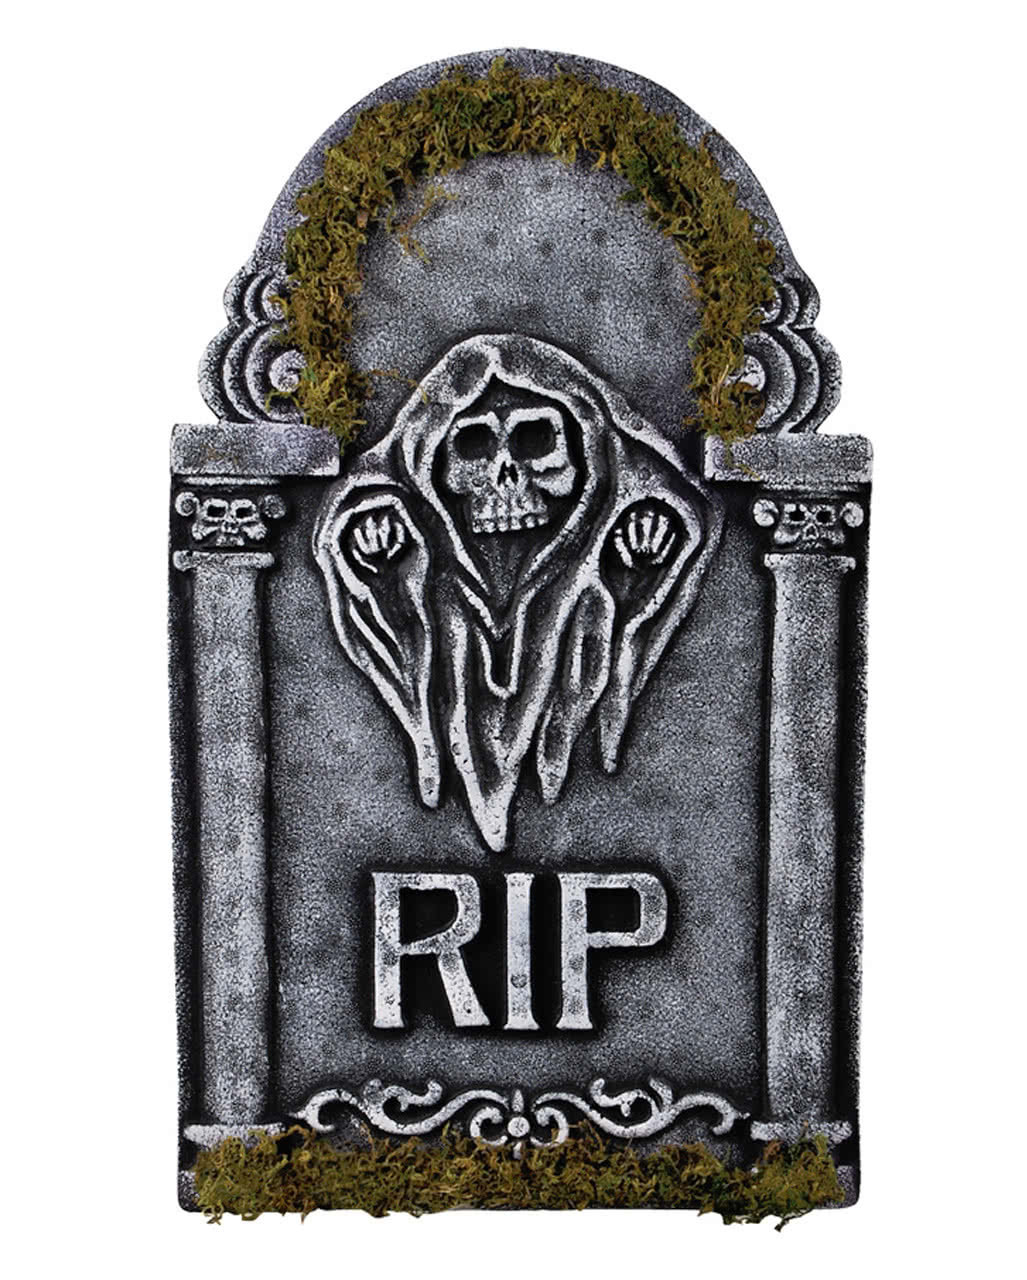 Halloween Grave Stone  Memorial stone Grim Reaper with moss